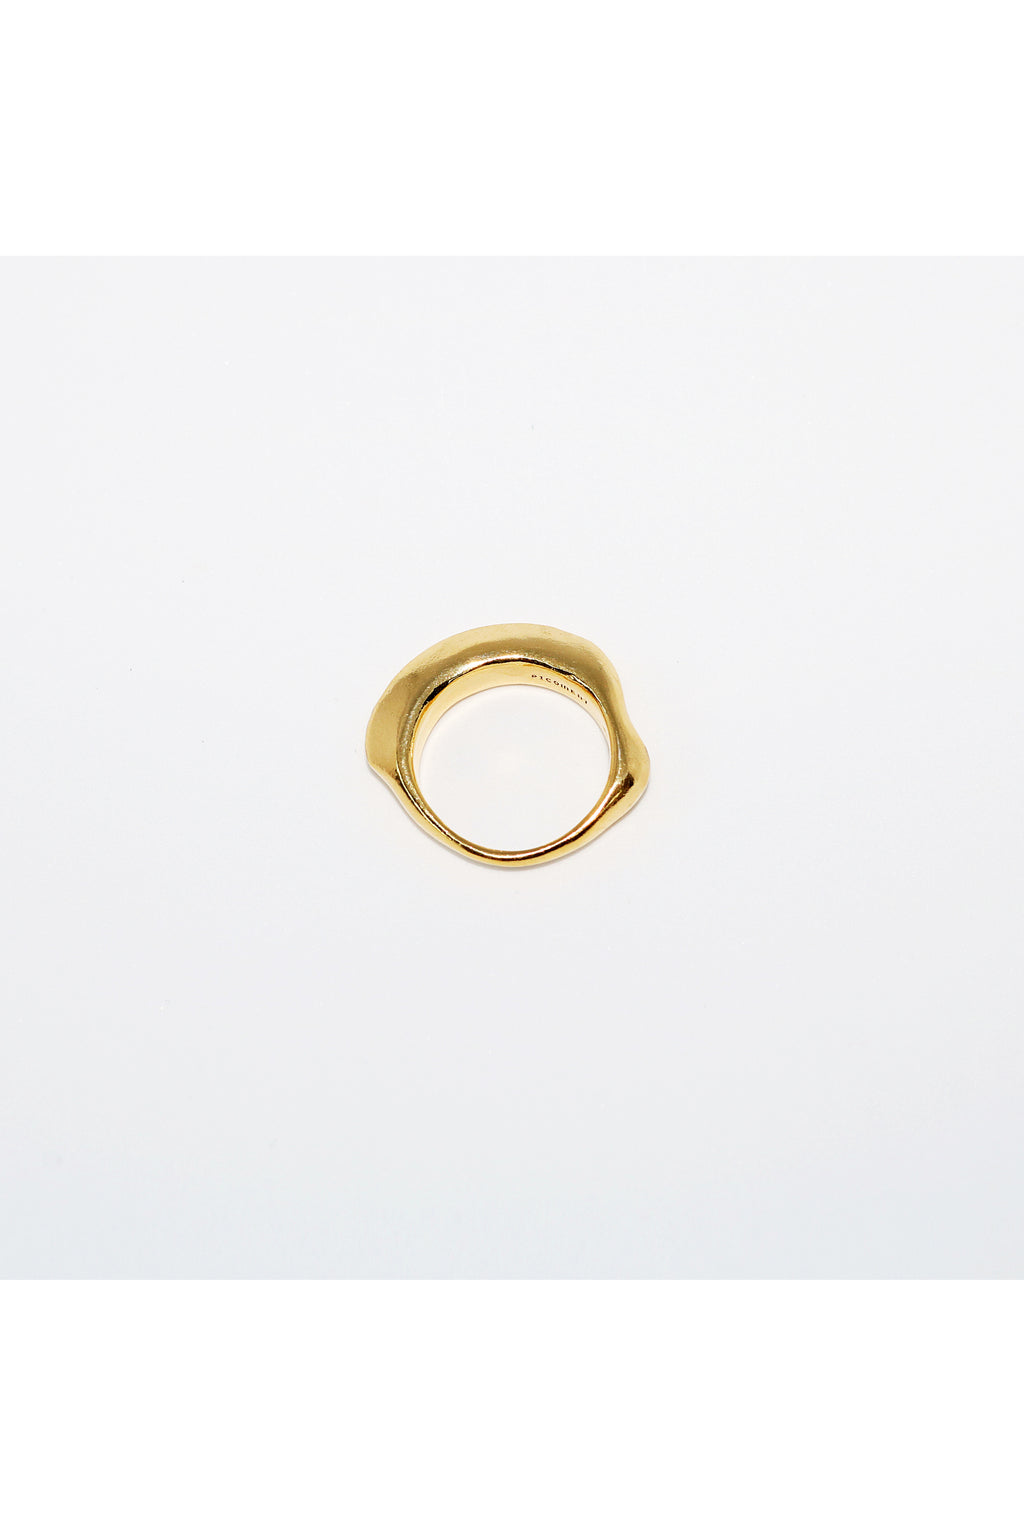 PICOMENT gold floating bony ring